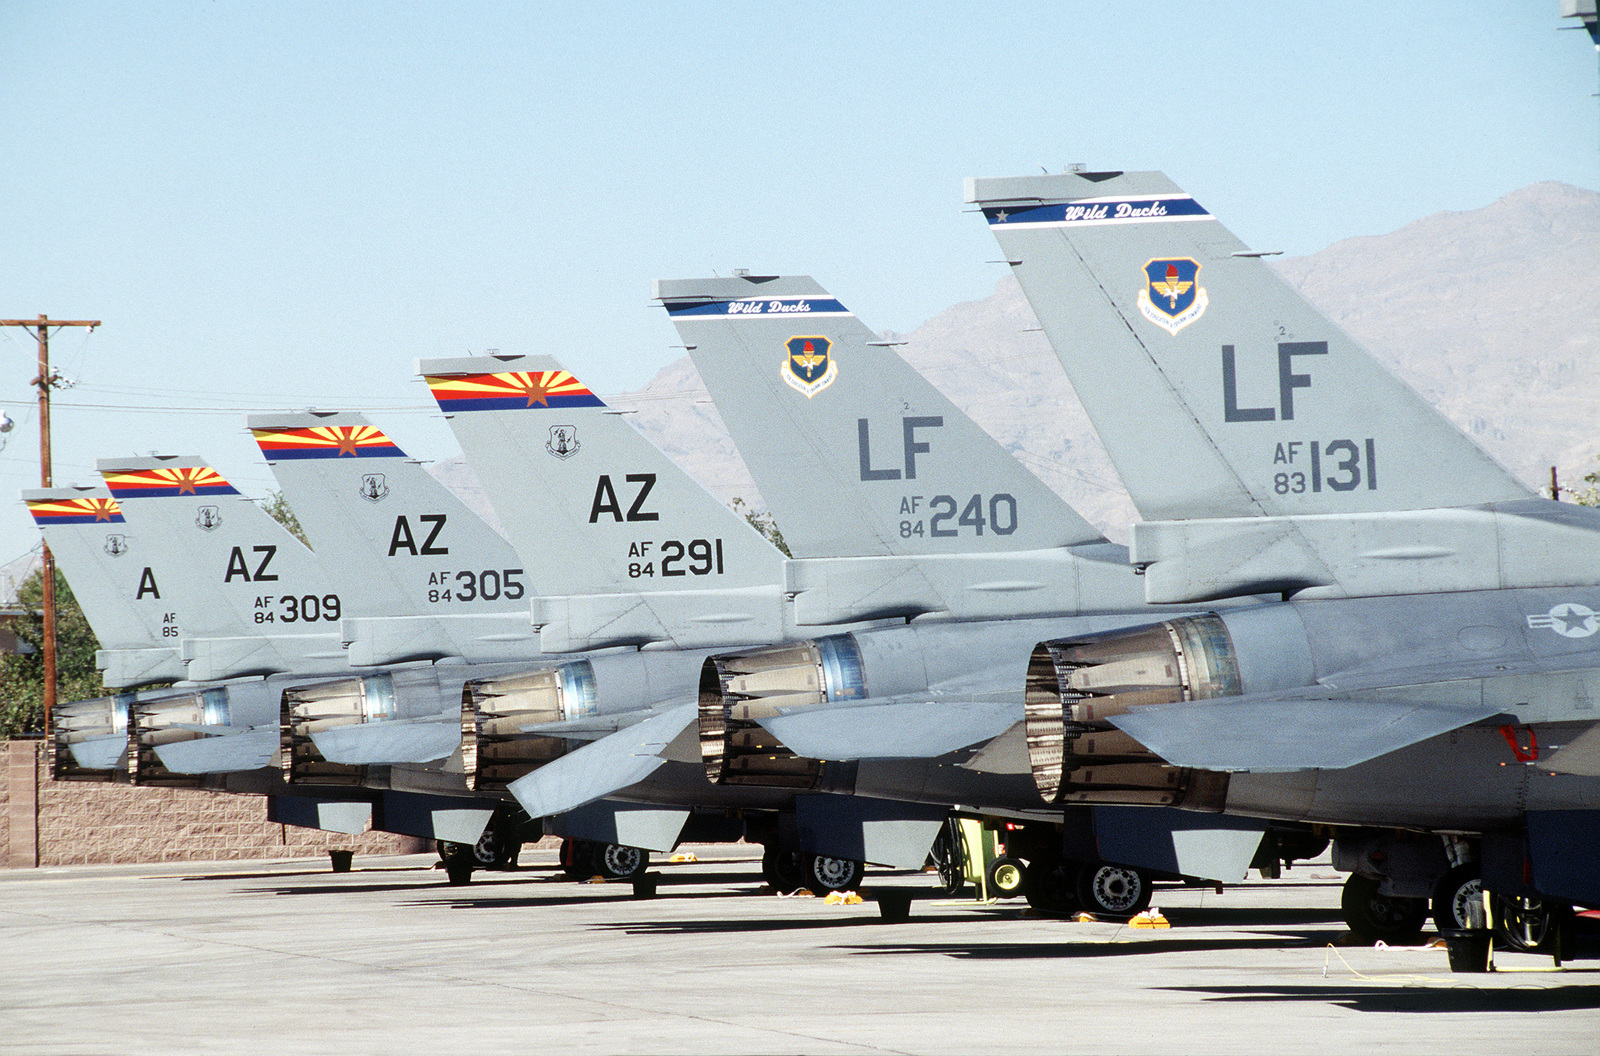 The tails of F-16 Falcon line up on the ramp during GUNSMOKE '95. The LT tails belong to 56th Fighter Wing, Luke Air Force Base, Arizona and the AZ tails belong to the 162nd Fighter Group (Air National Guard), Tucson, Arizona. Exact Date Shot Unknown